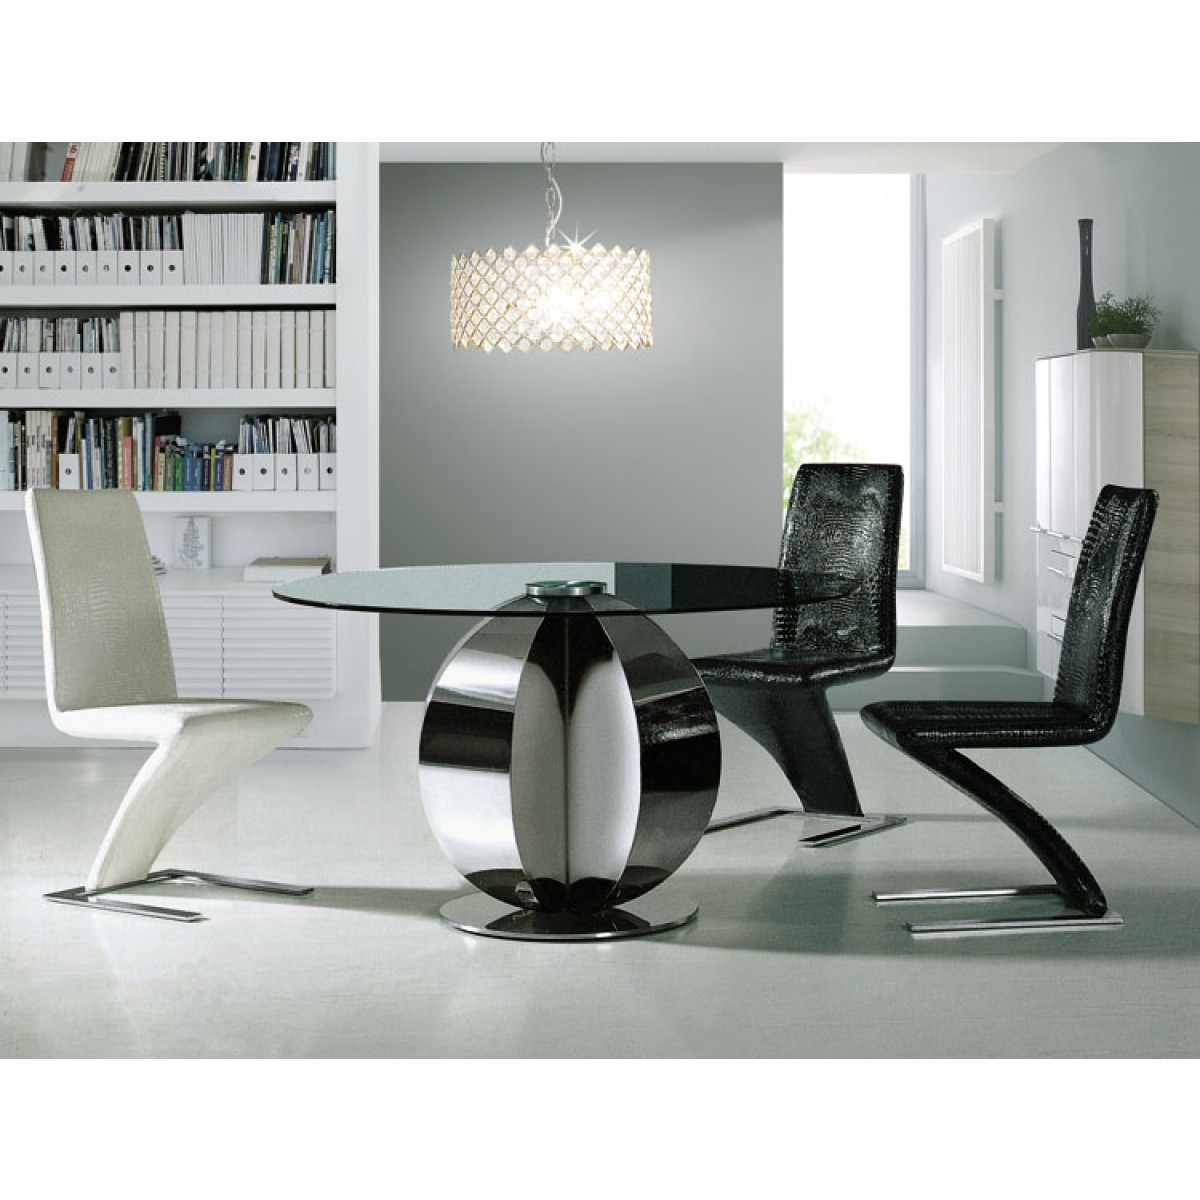 superbe table design giro pop. Black Bedroom Furniture Sets. Home Design Ideas